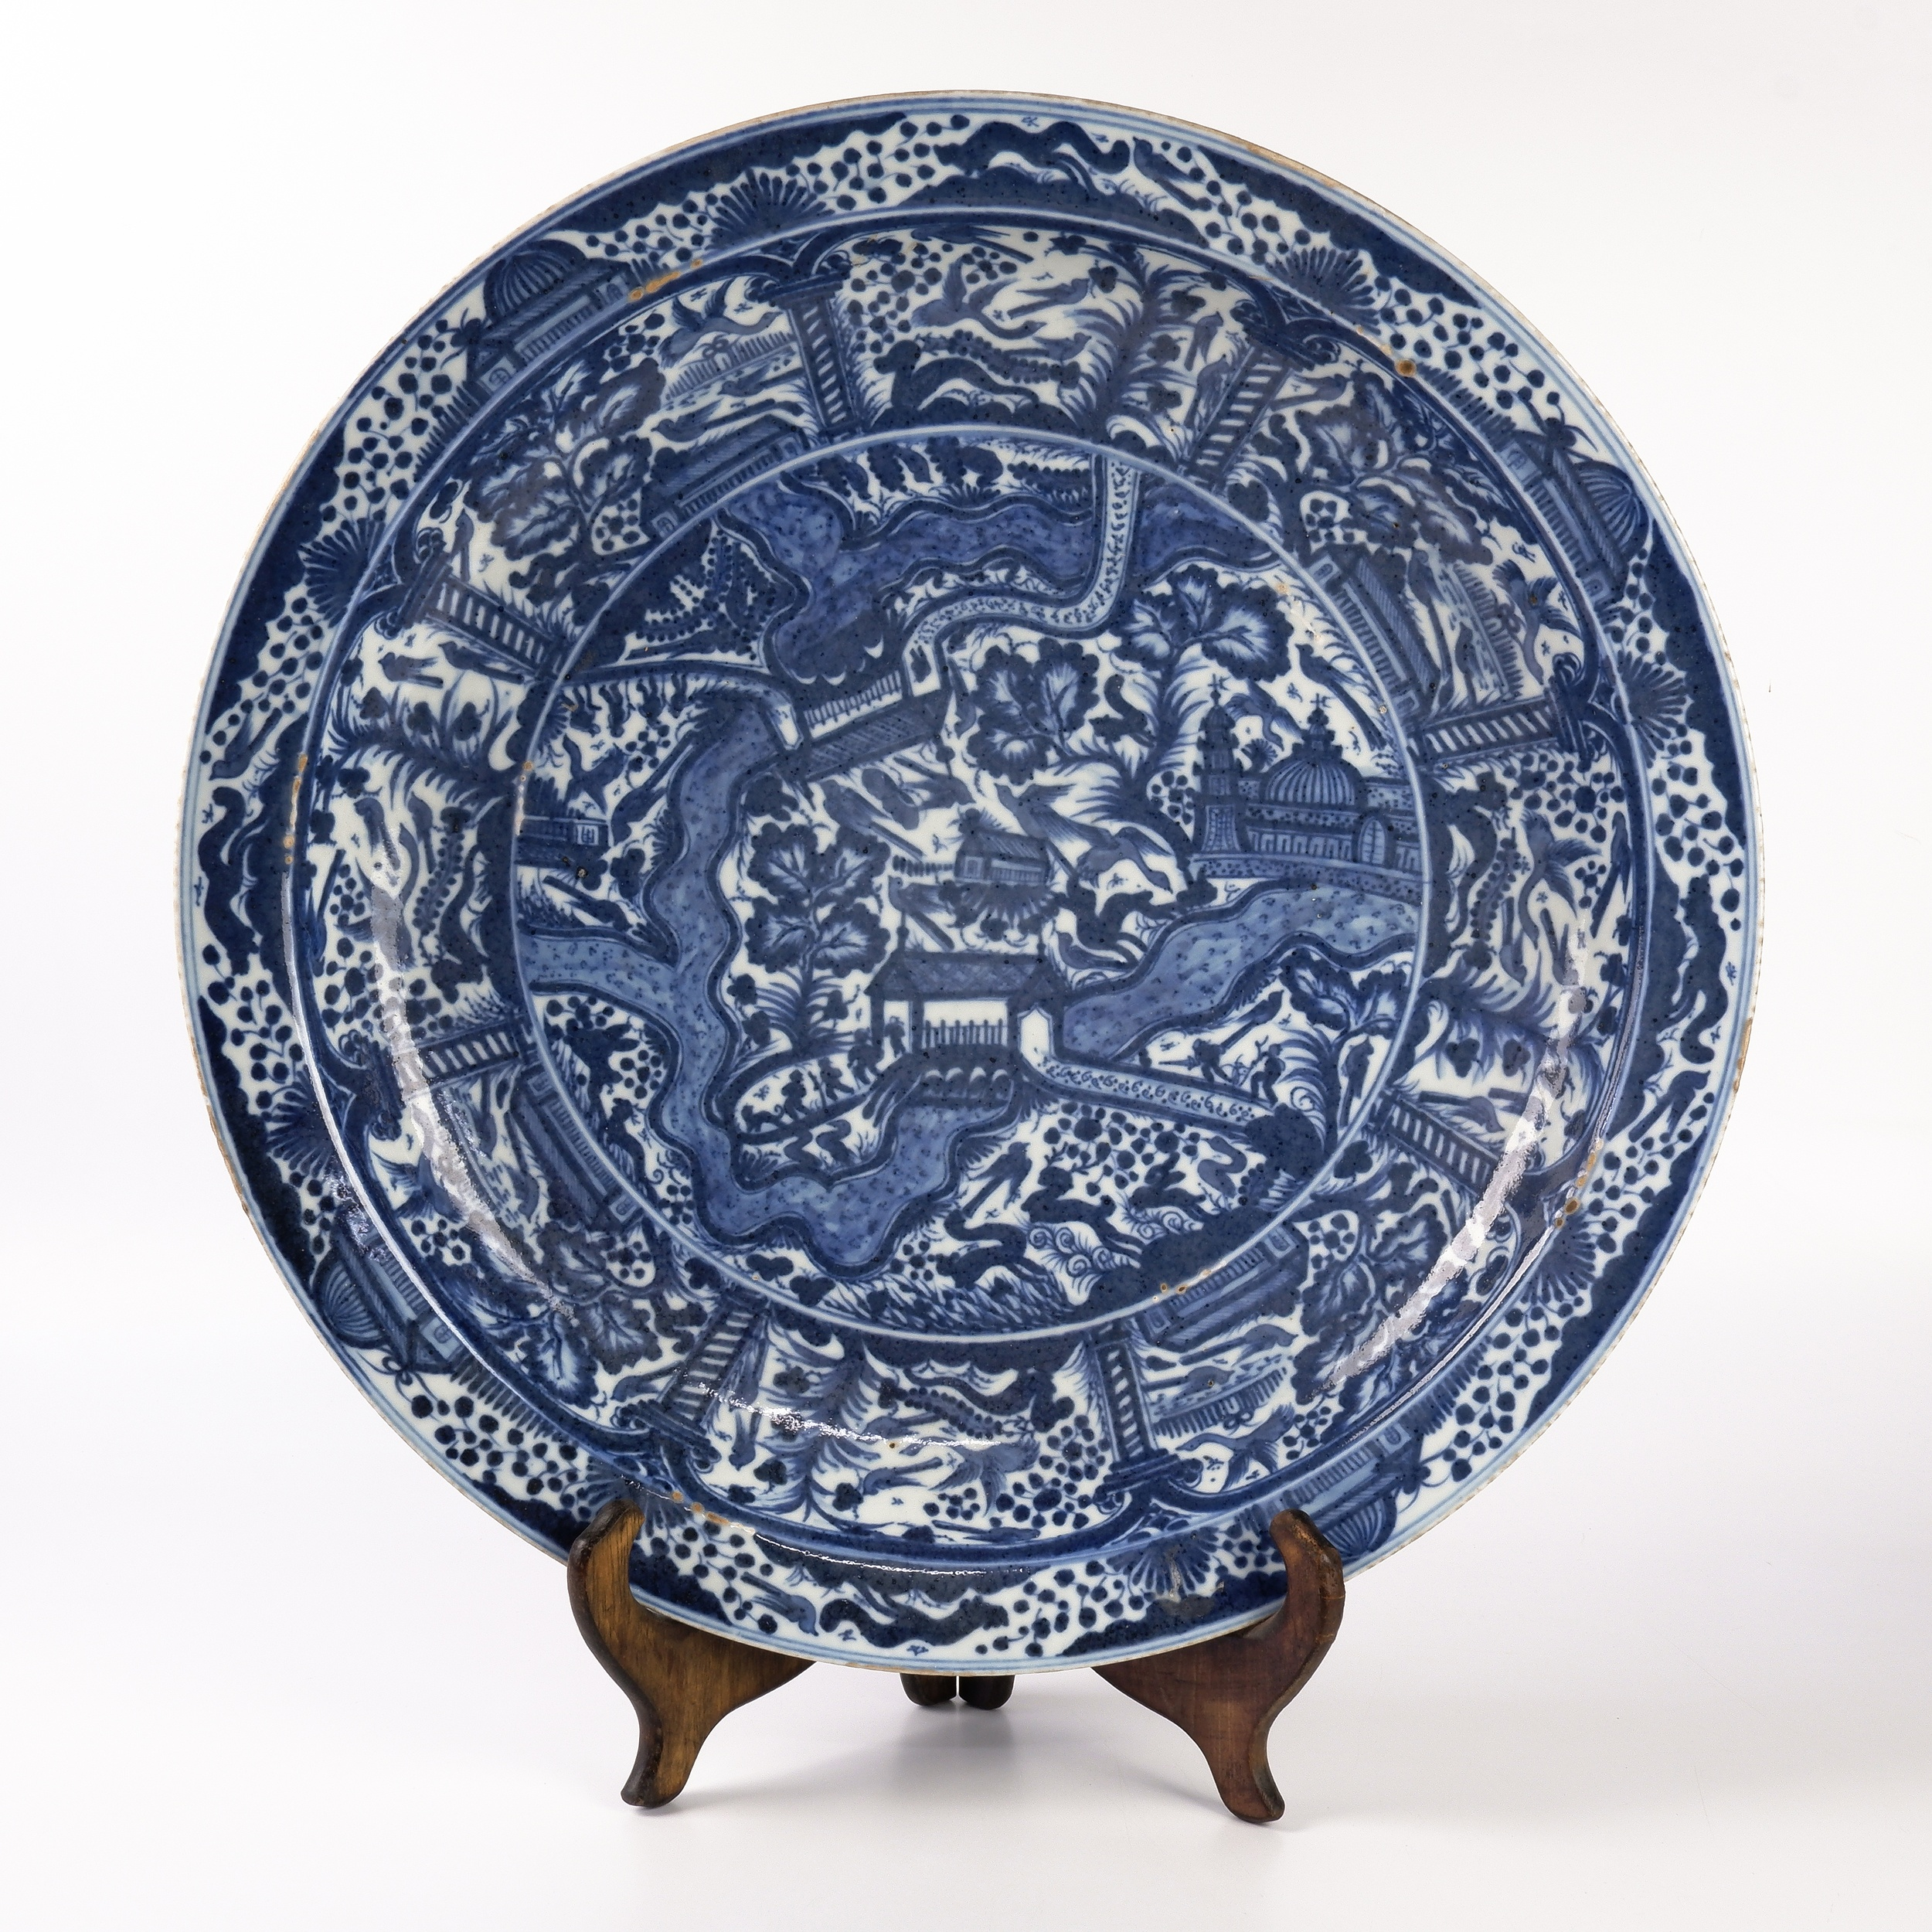 'Rare Large Antique Chinese Blue and White Charger for the Persian Market'